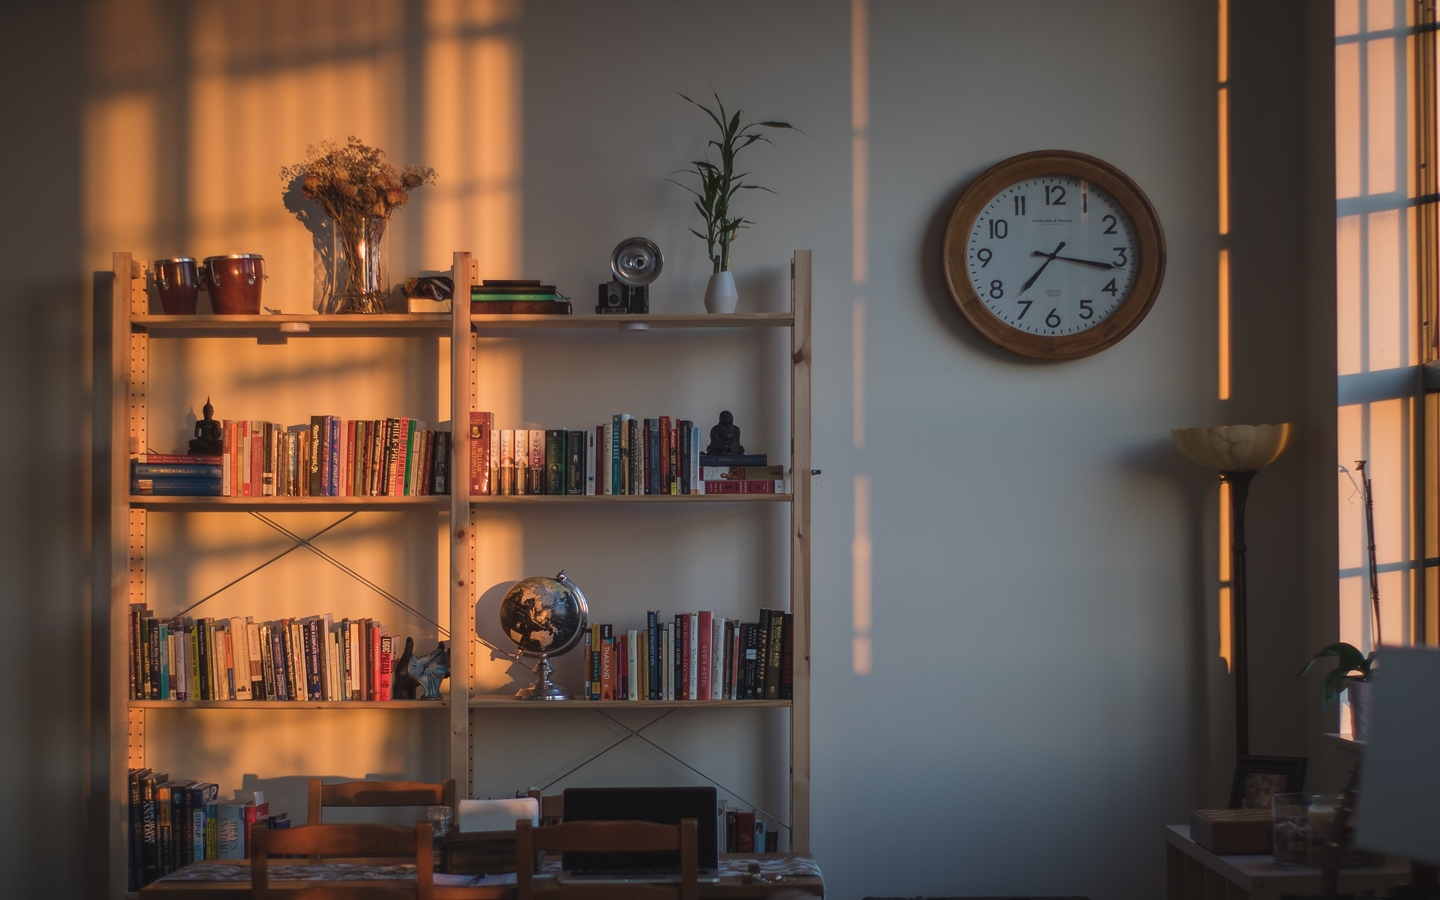 Bookshelves area considered as marks of sophisticated apartments